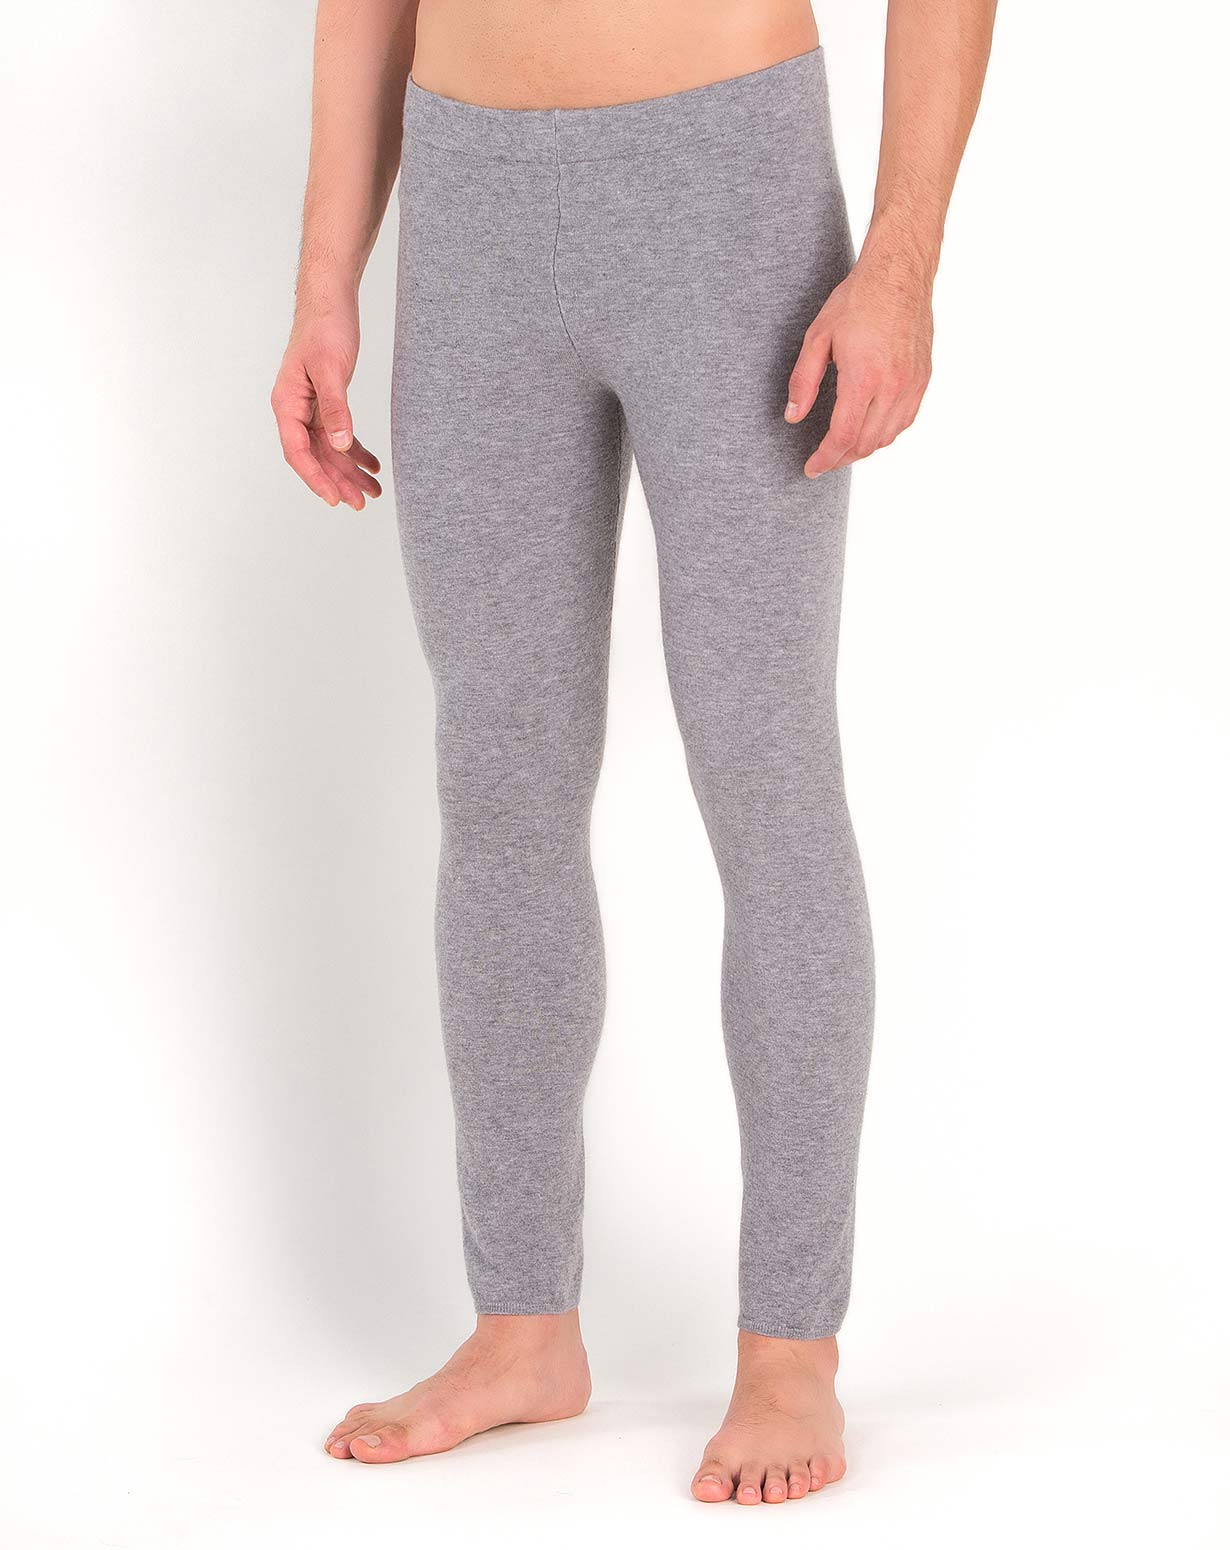 Men's Pure Cashmere Long Johns